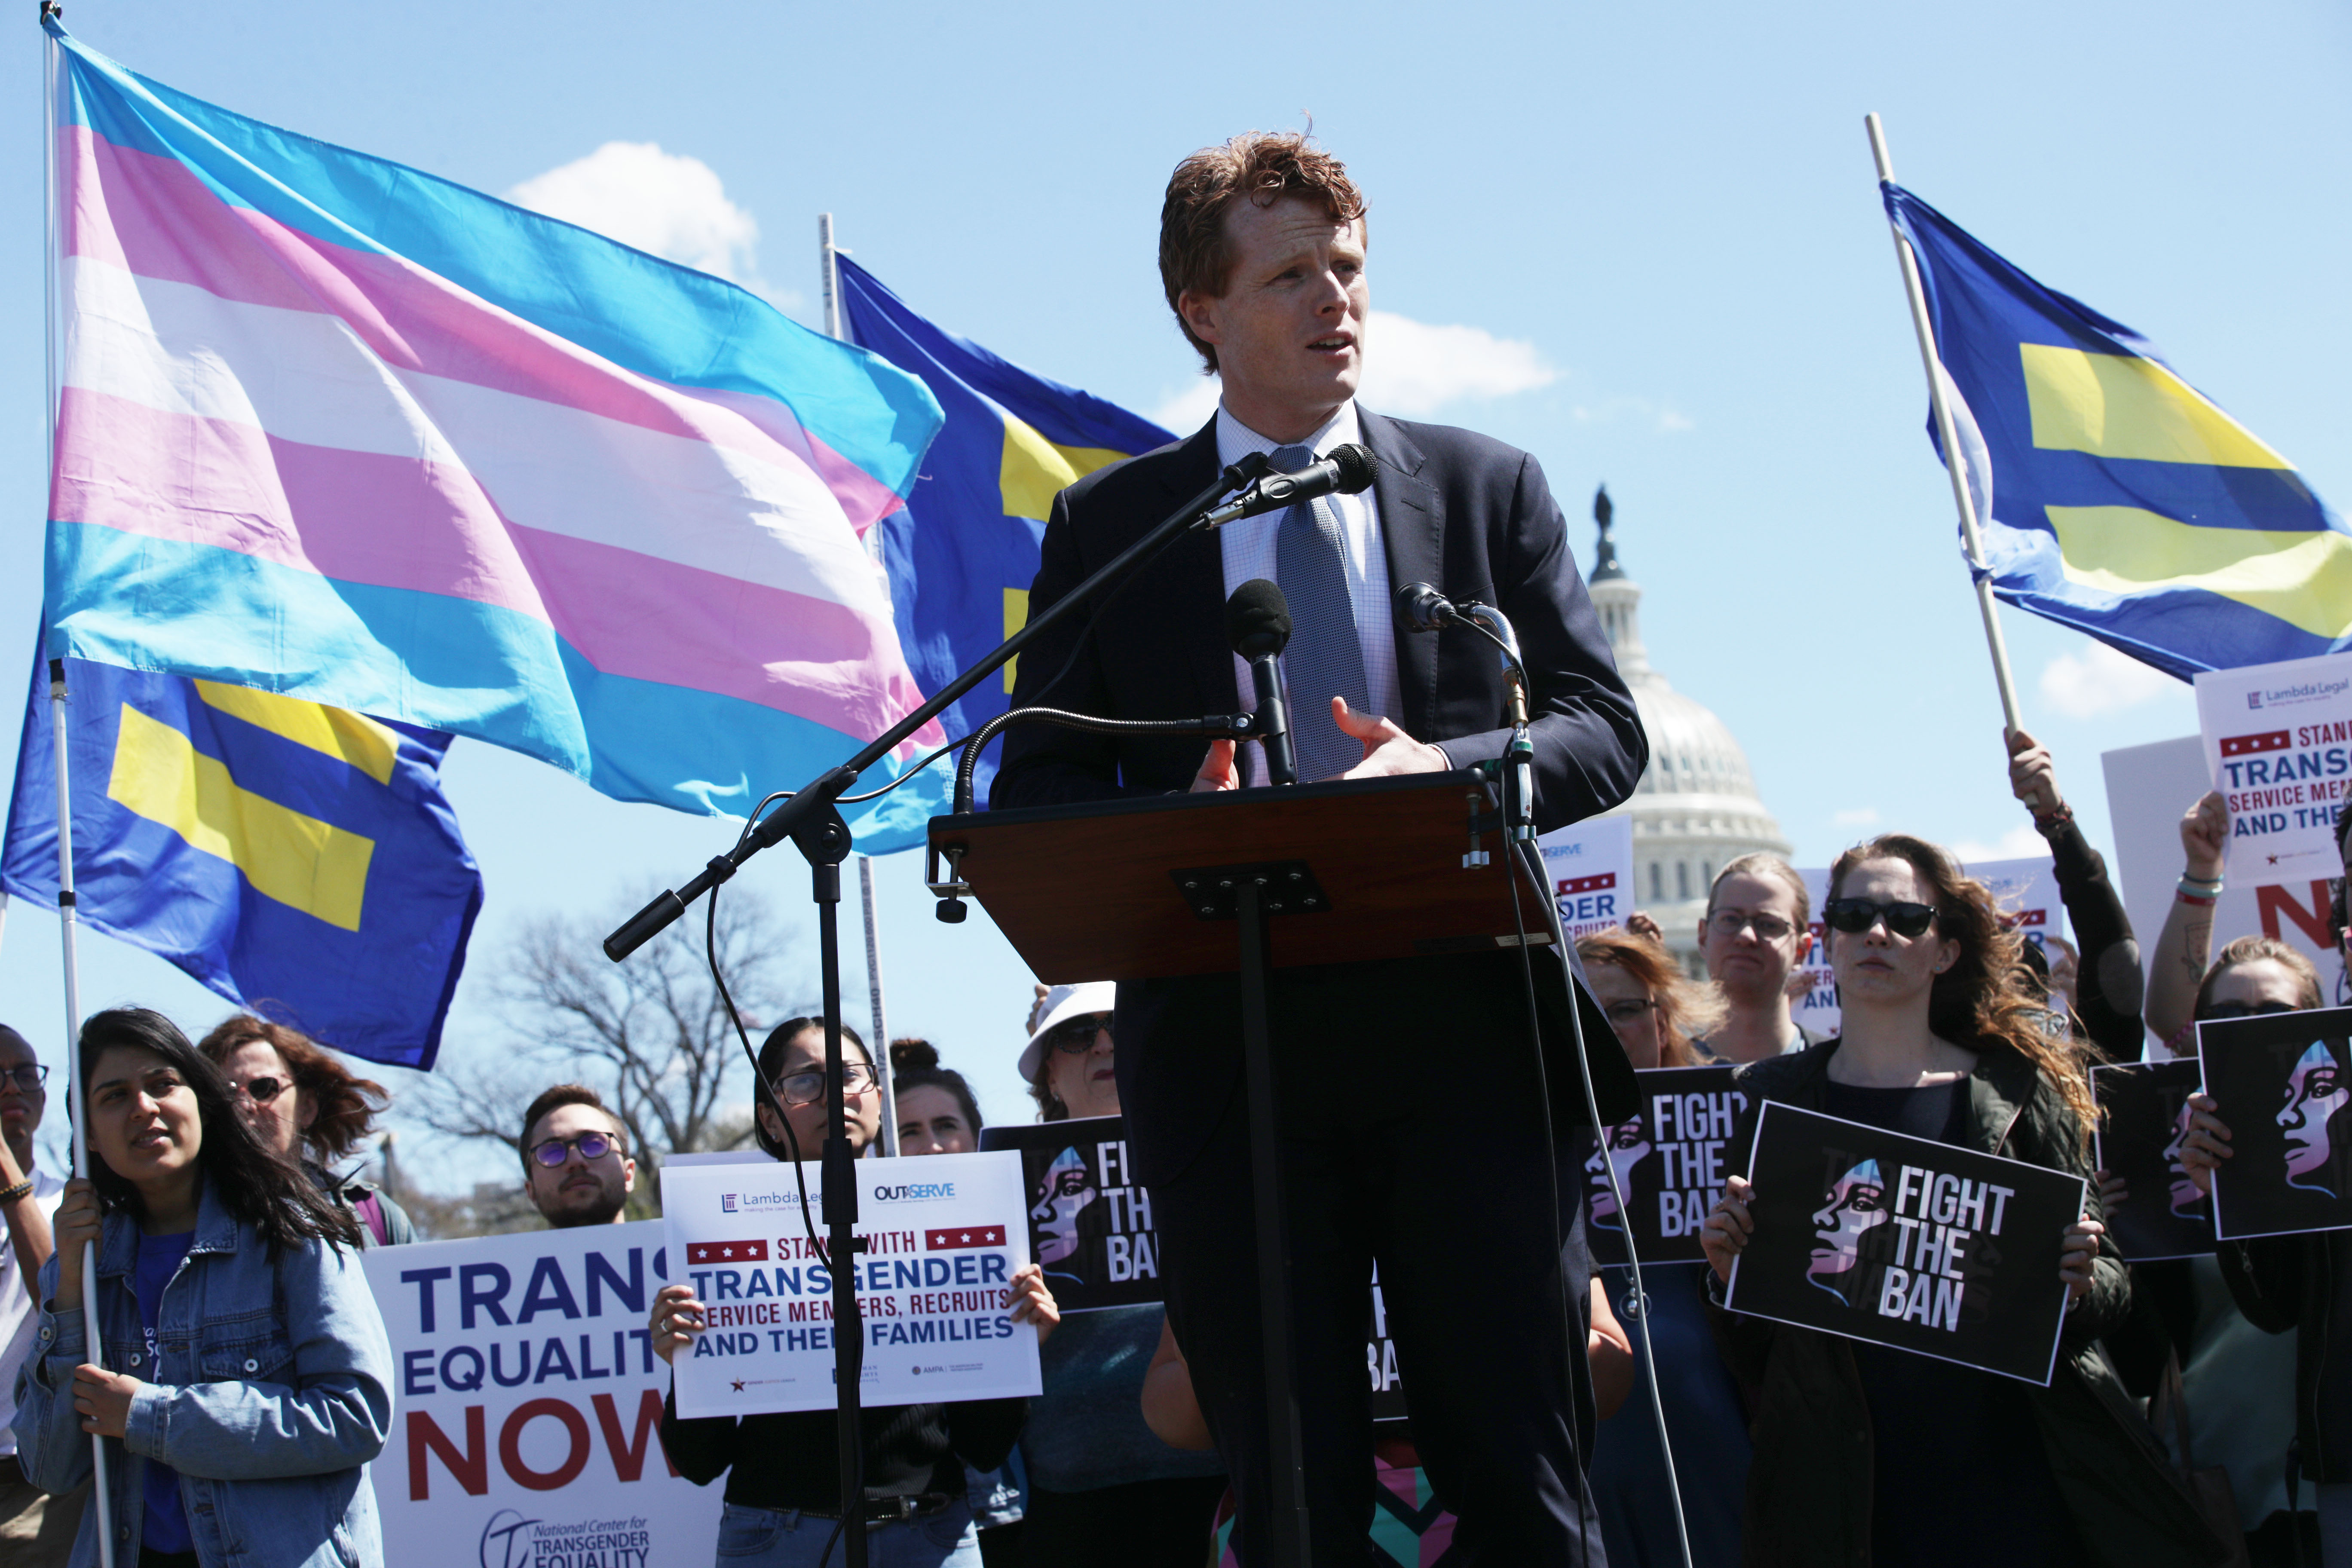 Joe Kennedy at a rally with the White House just behind